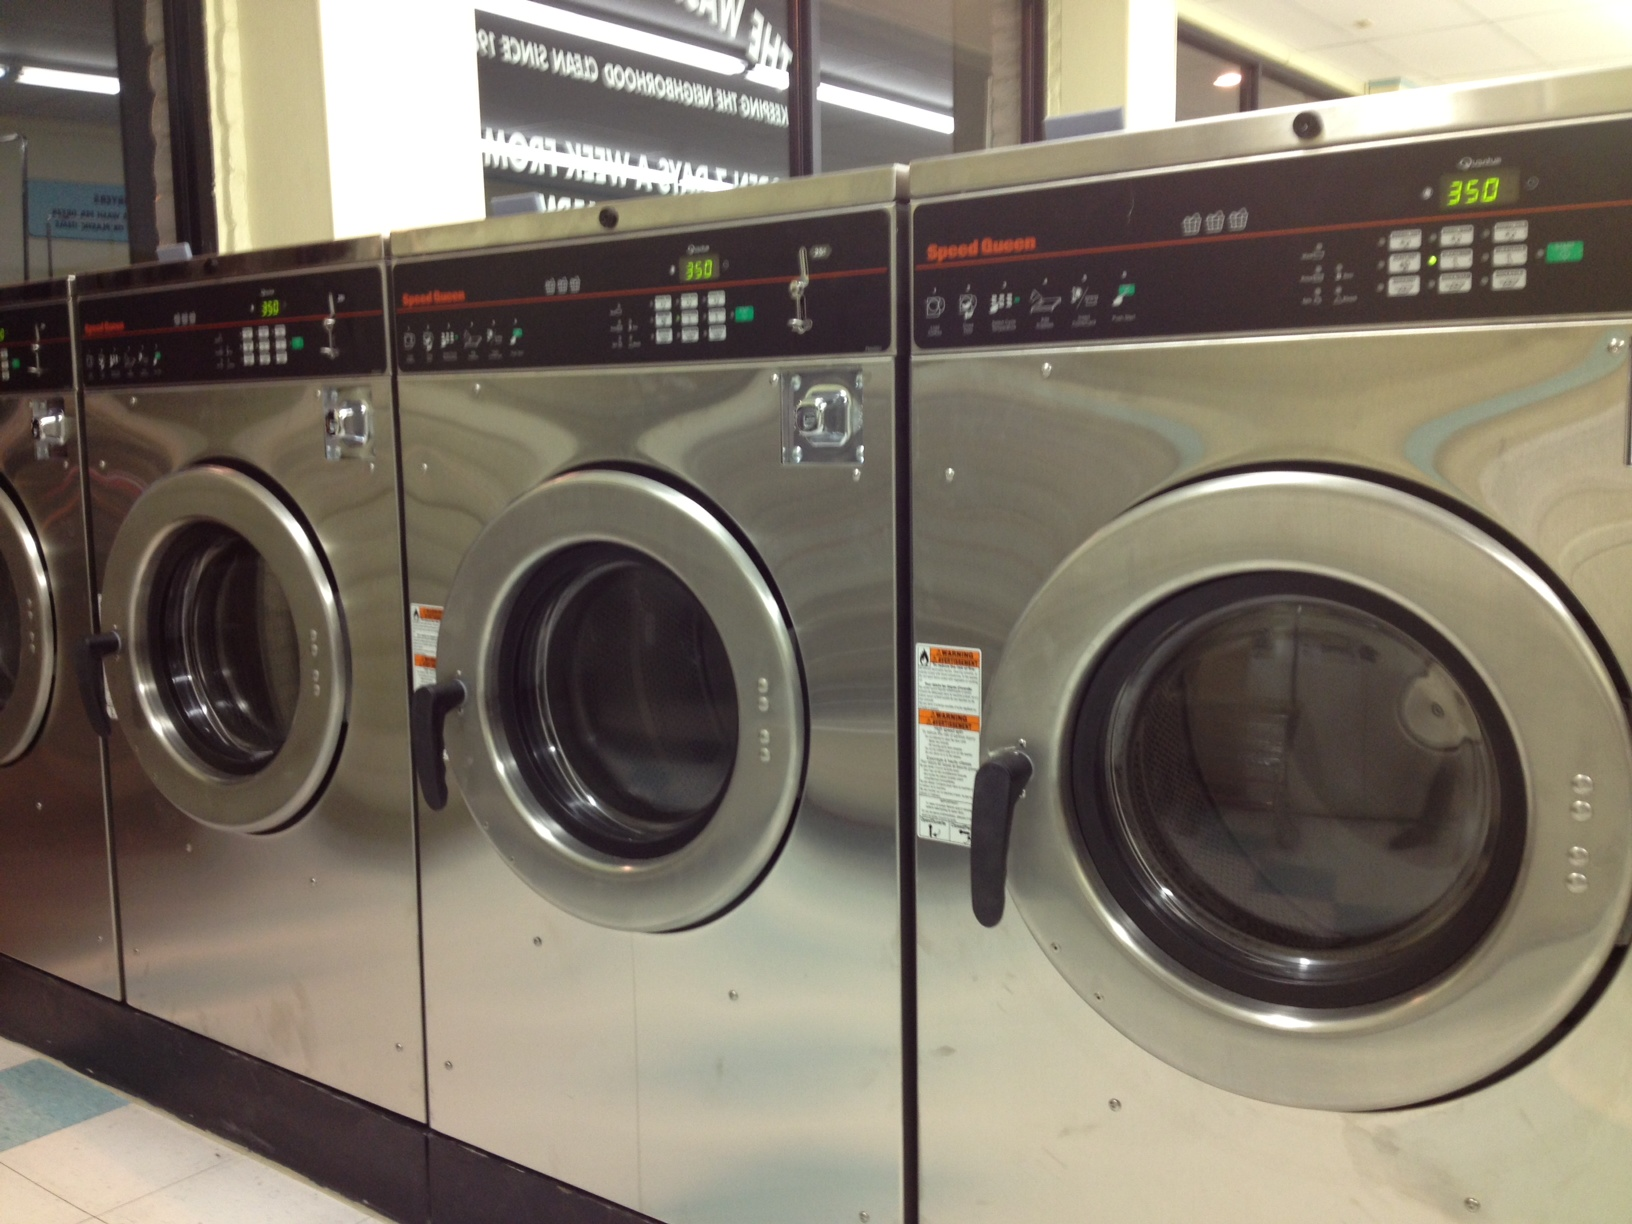 More front loading washing machines!